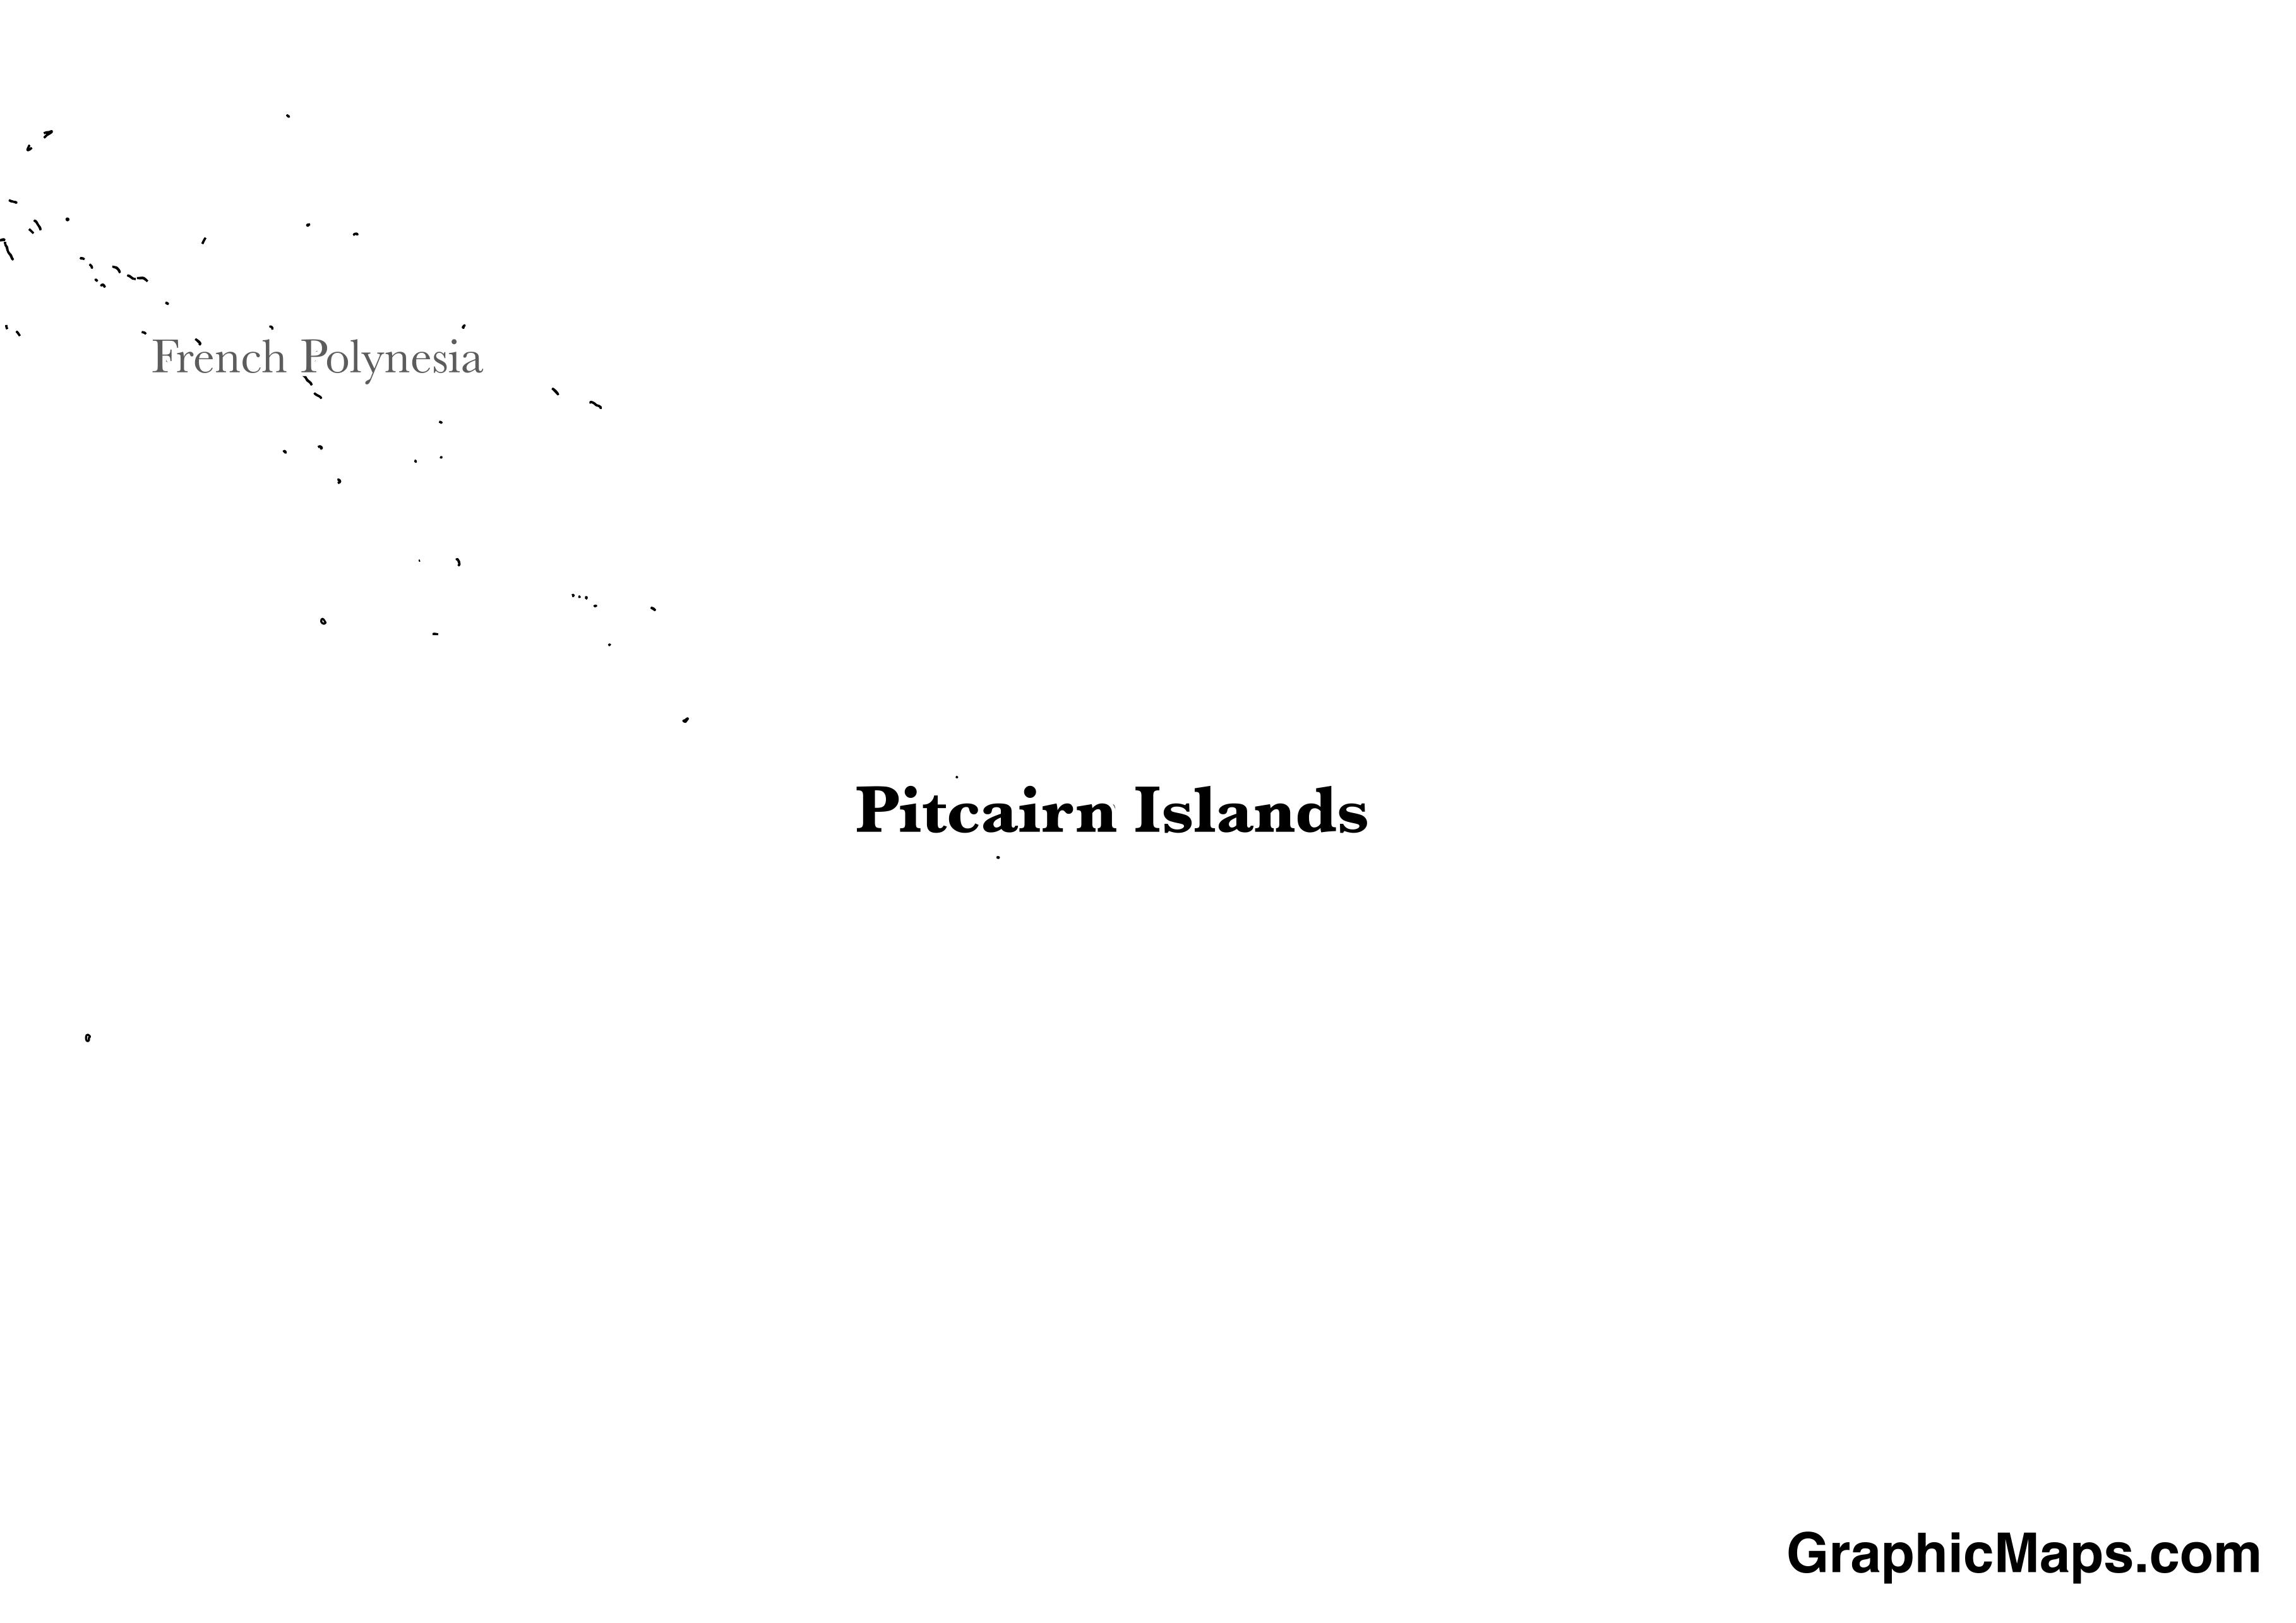 Map showing the location of Pitcairn